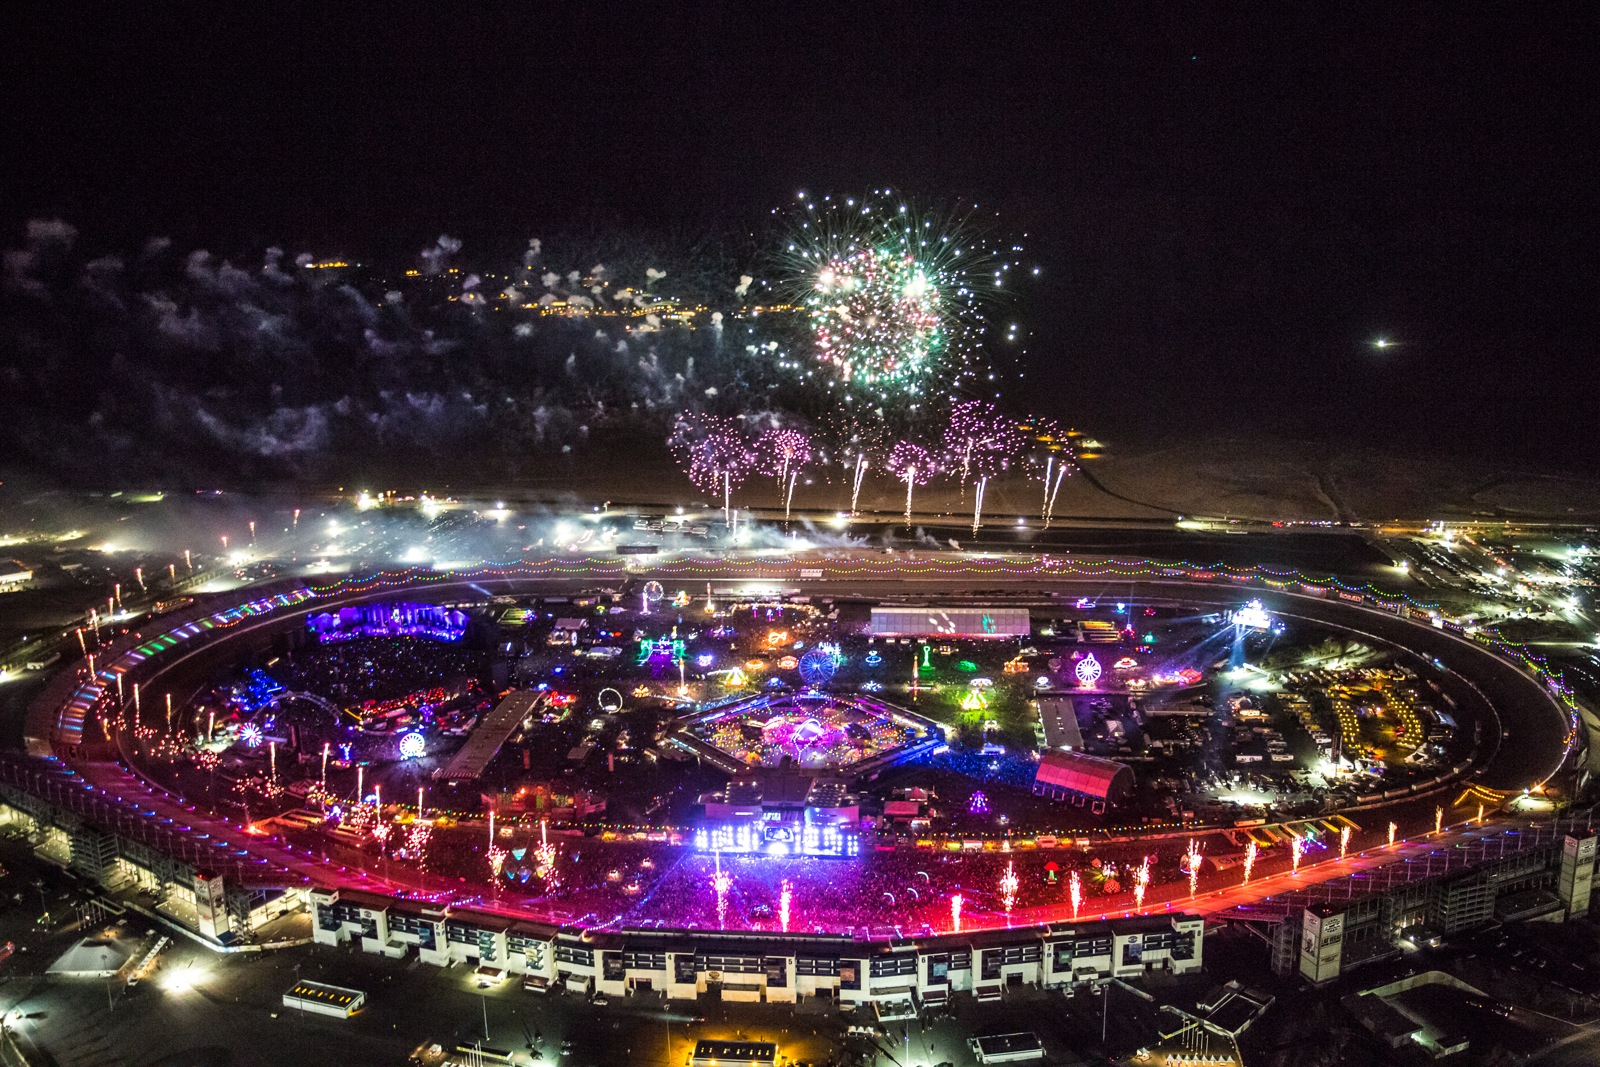 Electric Daisy Carnival 2014 Official A Live For Insomniac 6